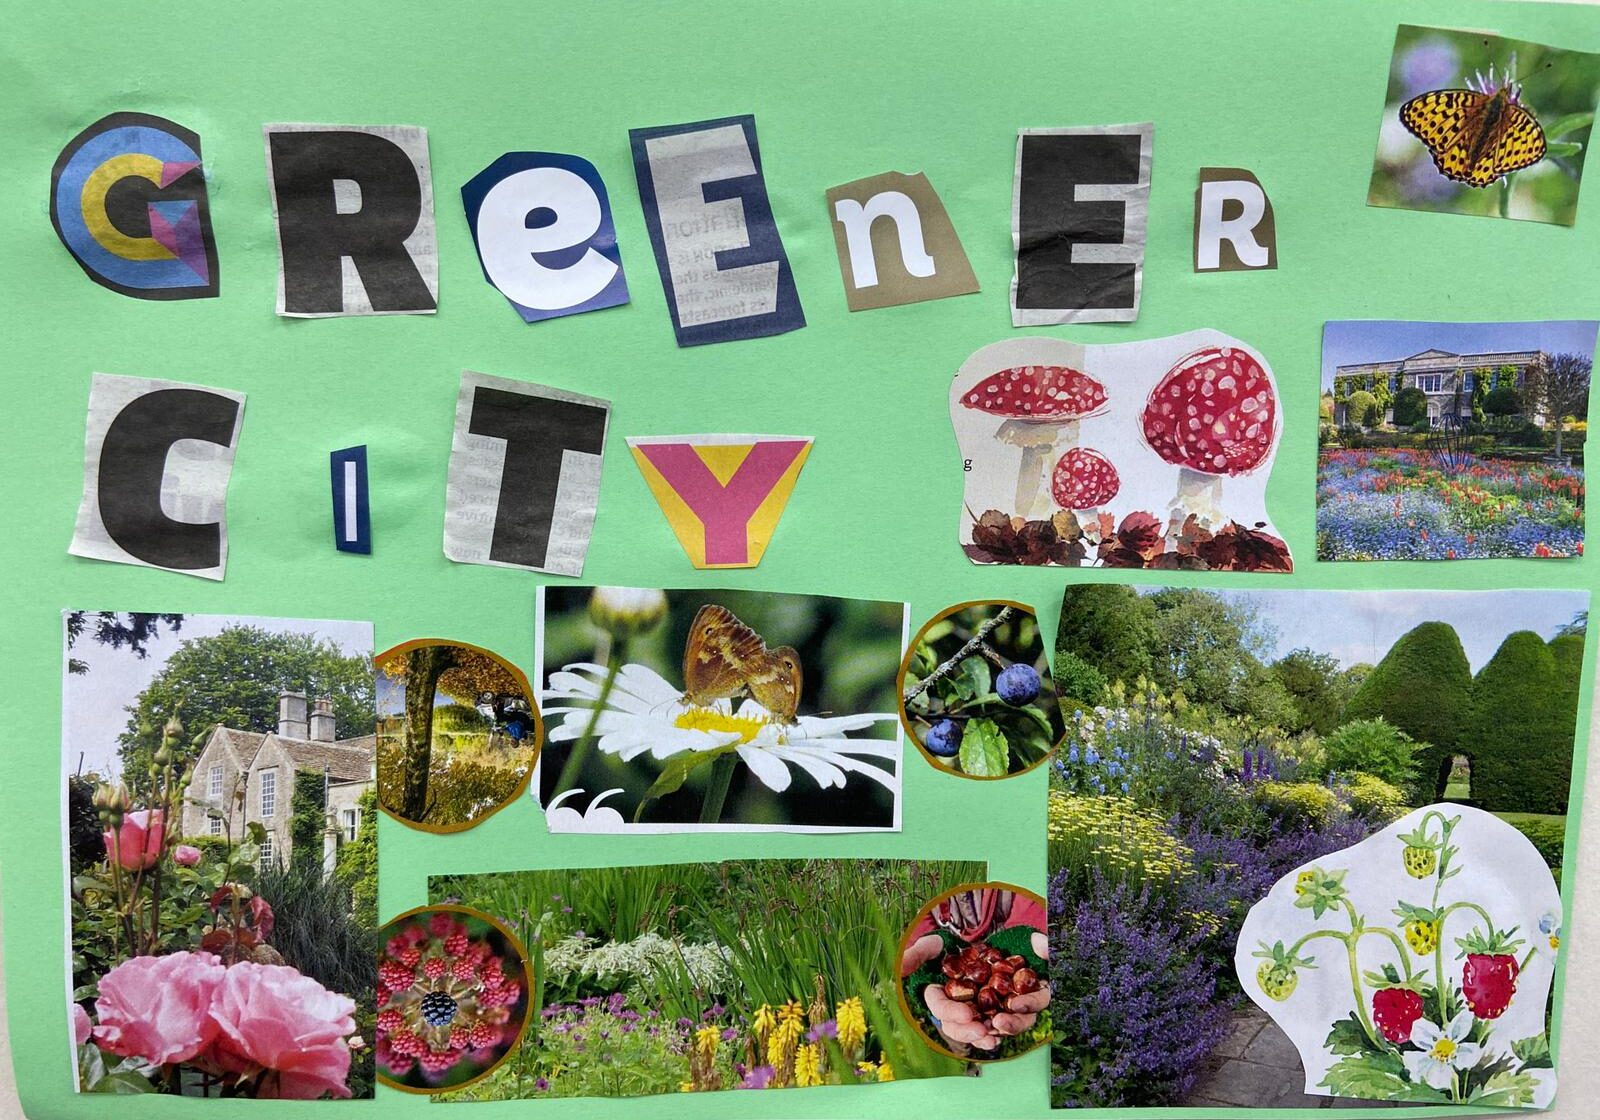 Collage of flowers, wildlife, with the words 'Greener City' featured in a bold, overlapping type.